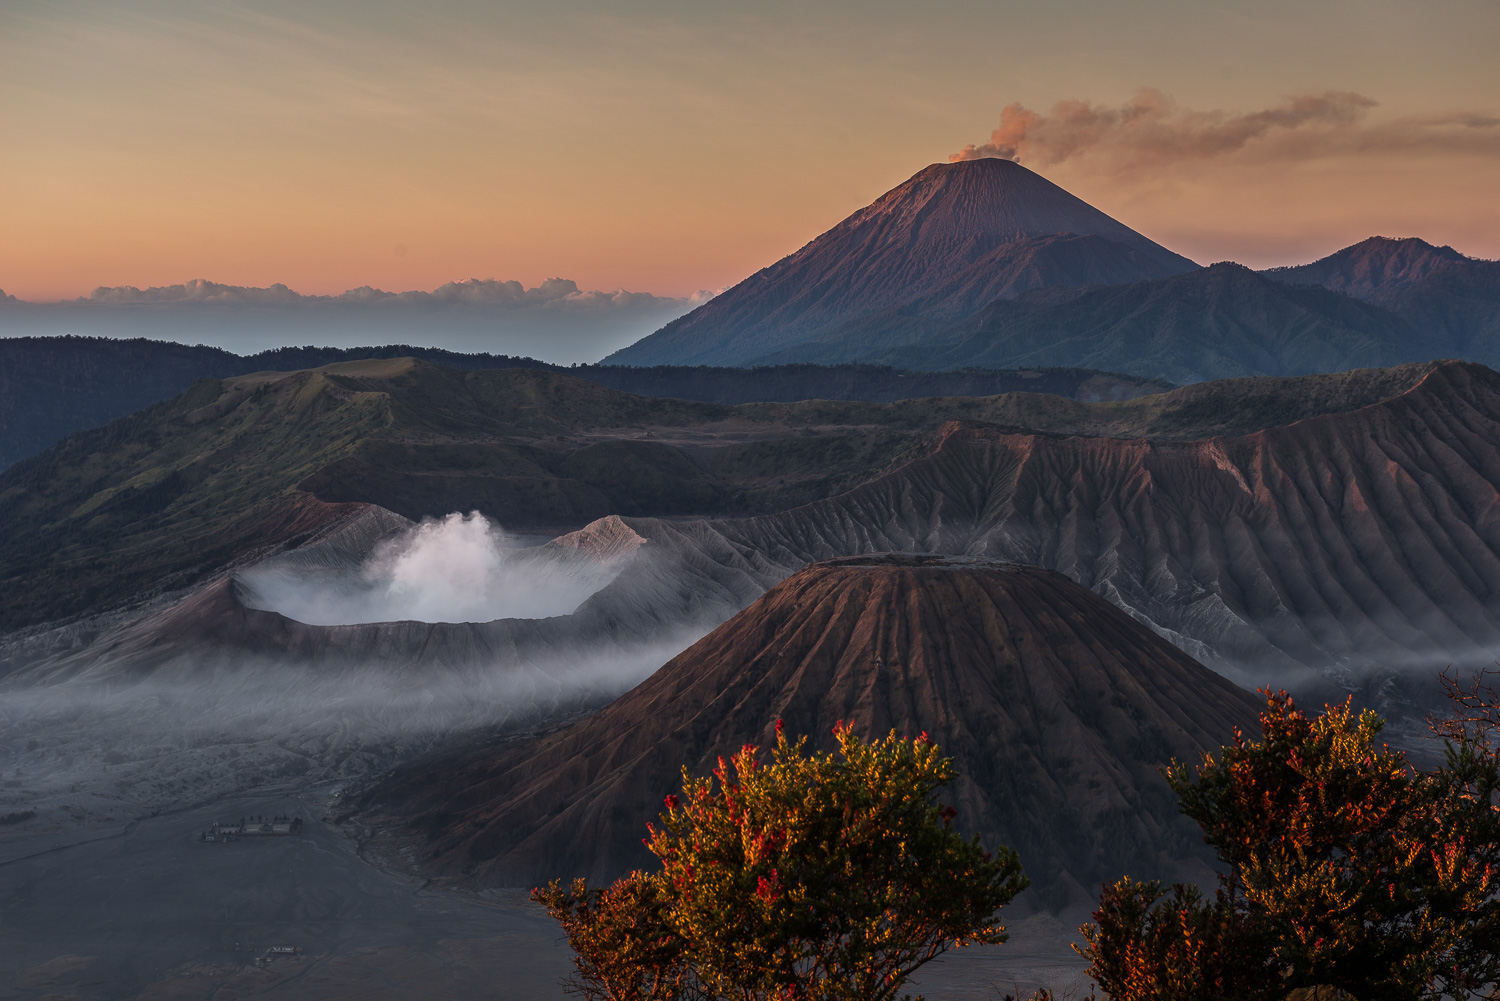 Mount Bromo & Mount Batok, Mount Semeru, East Java, Indonesia